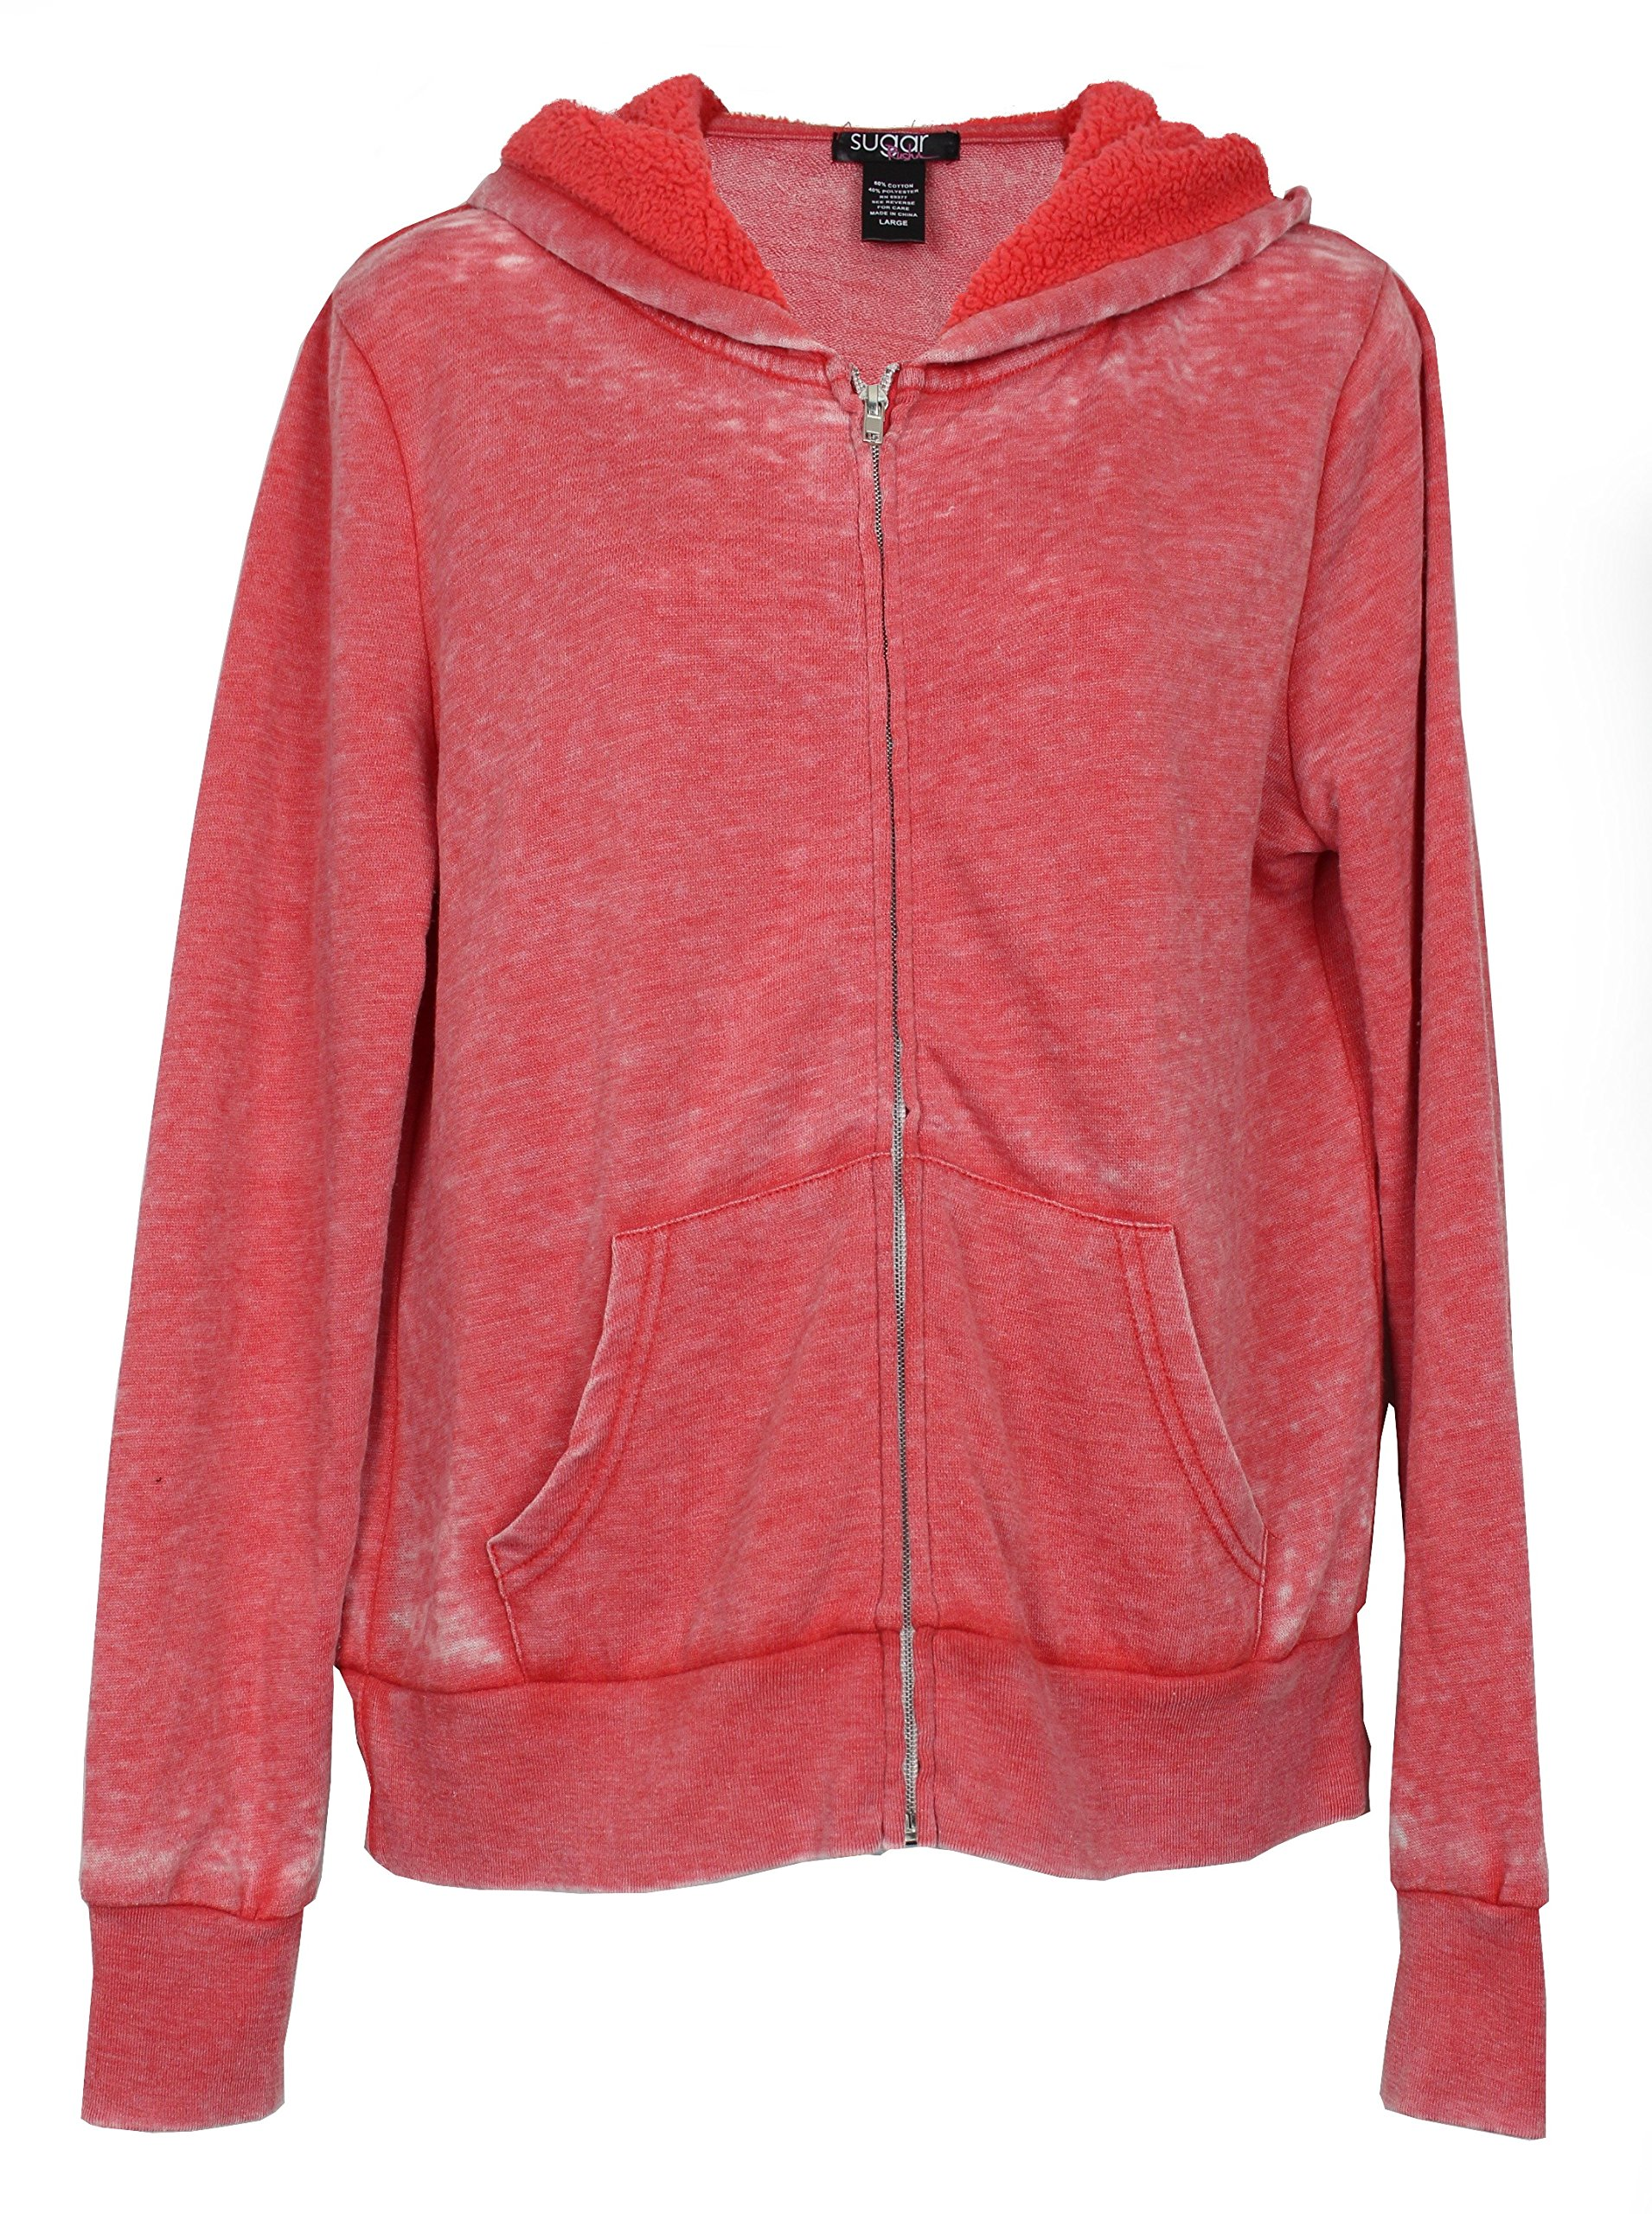 Sugar Rush Women's Zippered Cotton Blend Fashion Hoodie (Medium, Distressed Red)